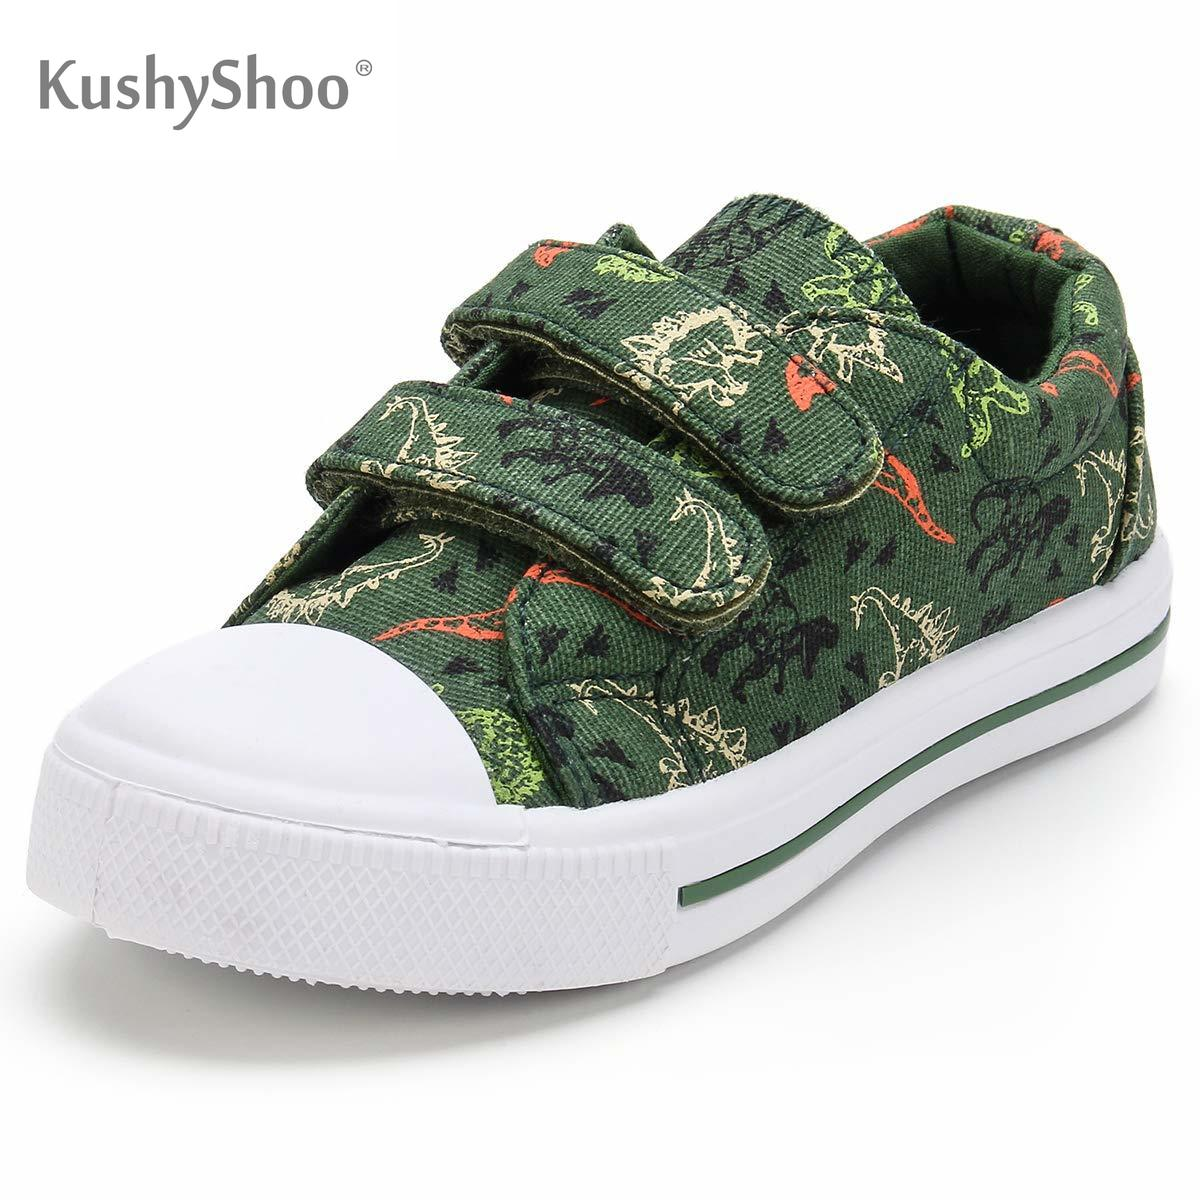 KushyShoo Kids Shoes Cartoon Dinosaur Printed Dual Hook & Loop Children's Sneakers Girl Boy Toddler Sneakers Canvas Shoes